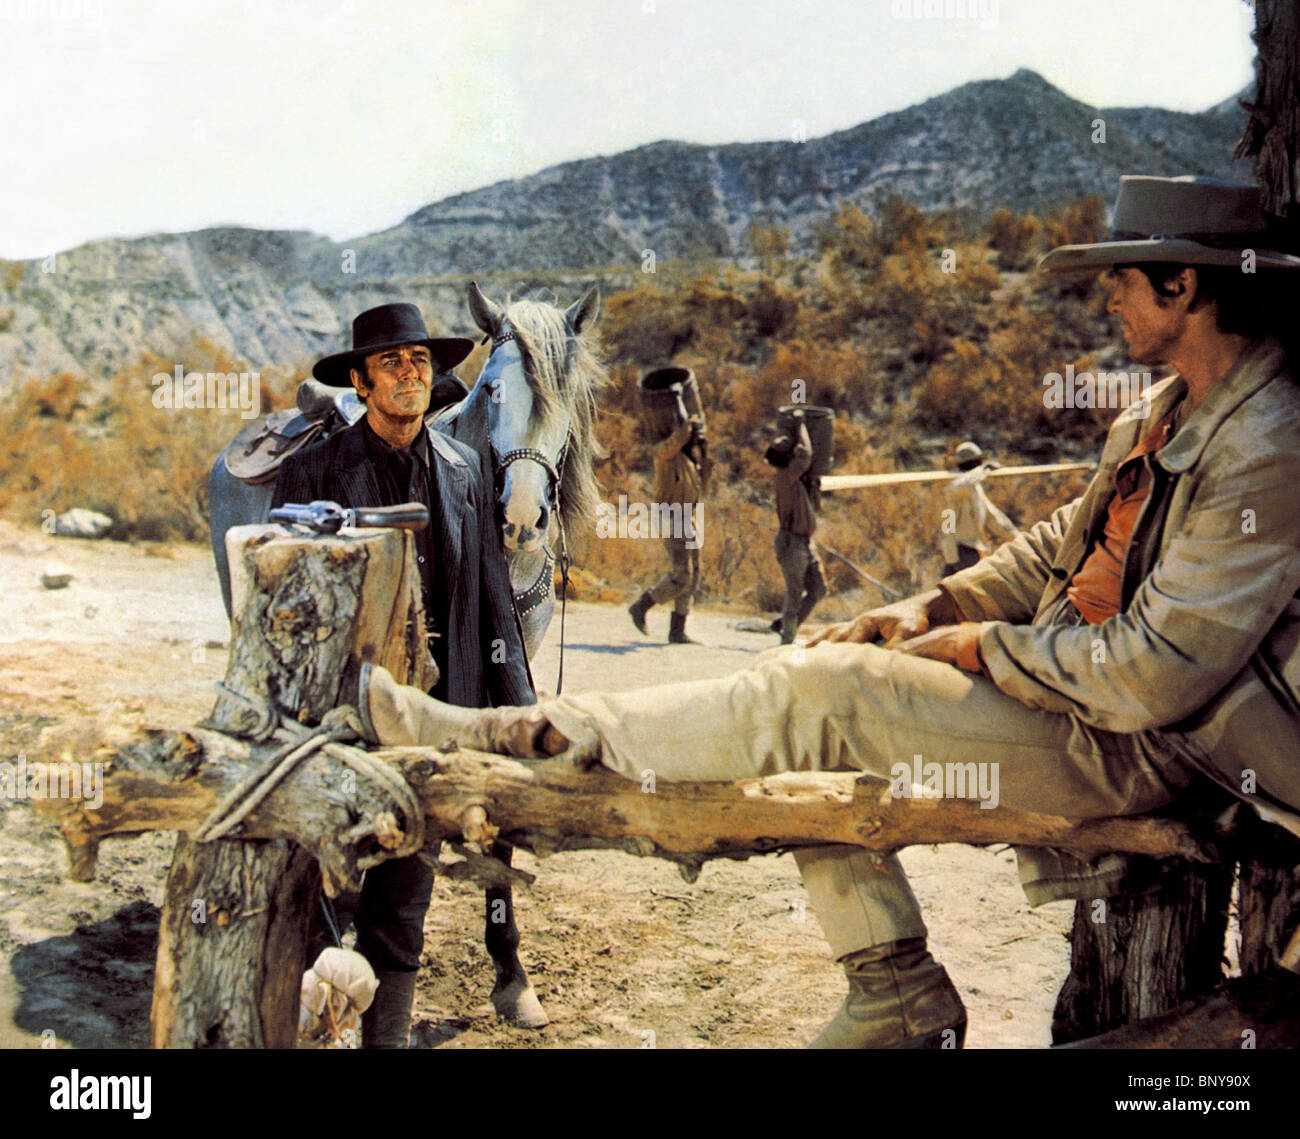 Once Upon A Time In The West: HENRY FONDA & CHARLES BRONSON ONCE UPON A TIME IN THE WEST